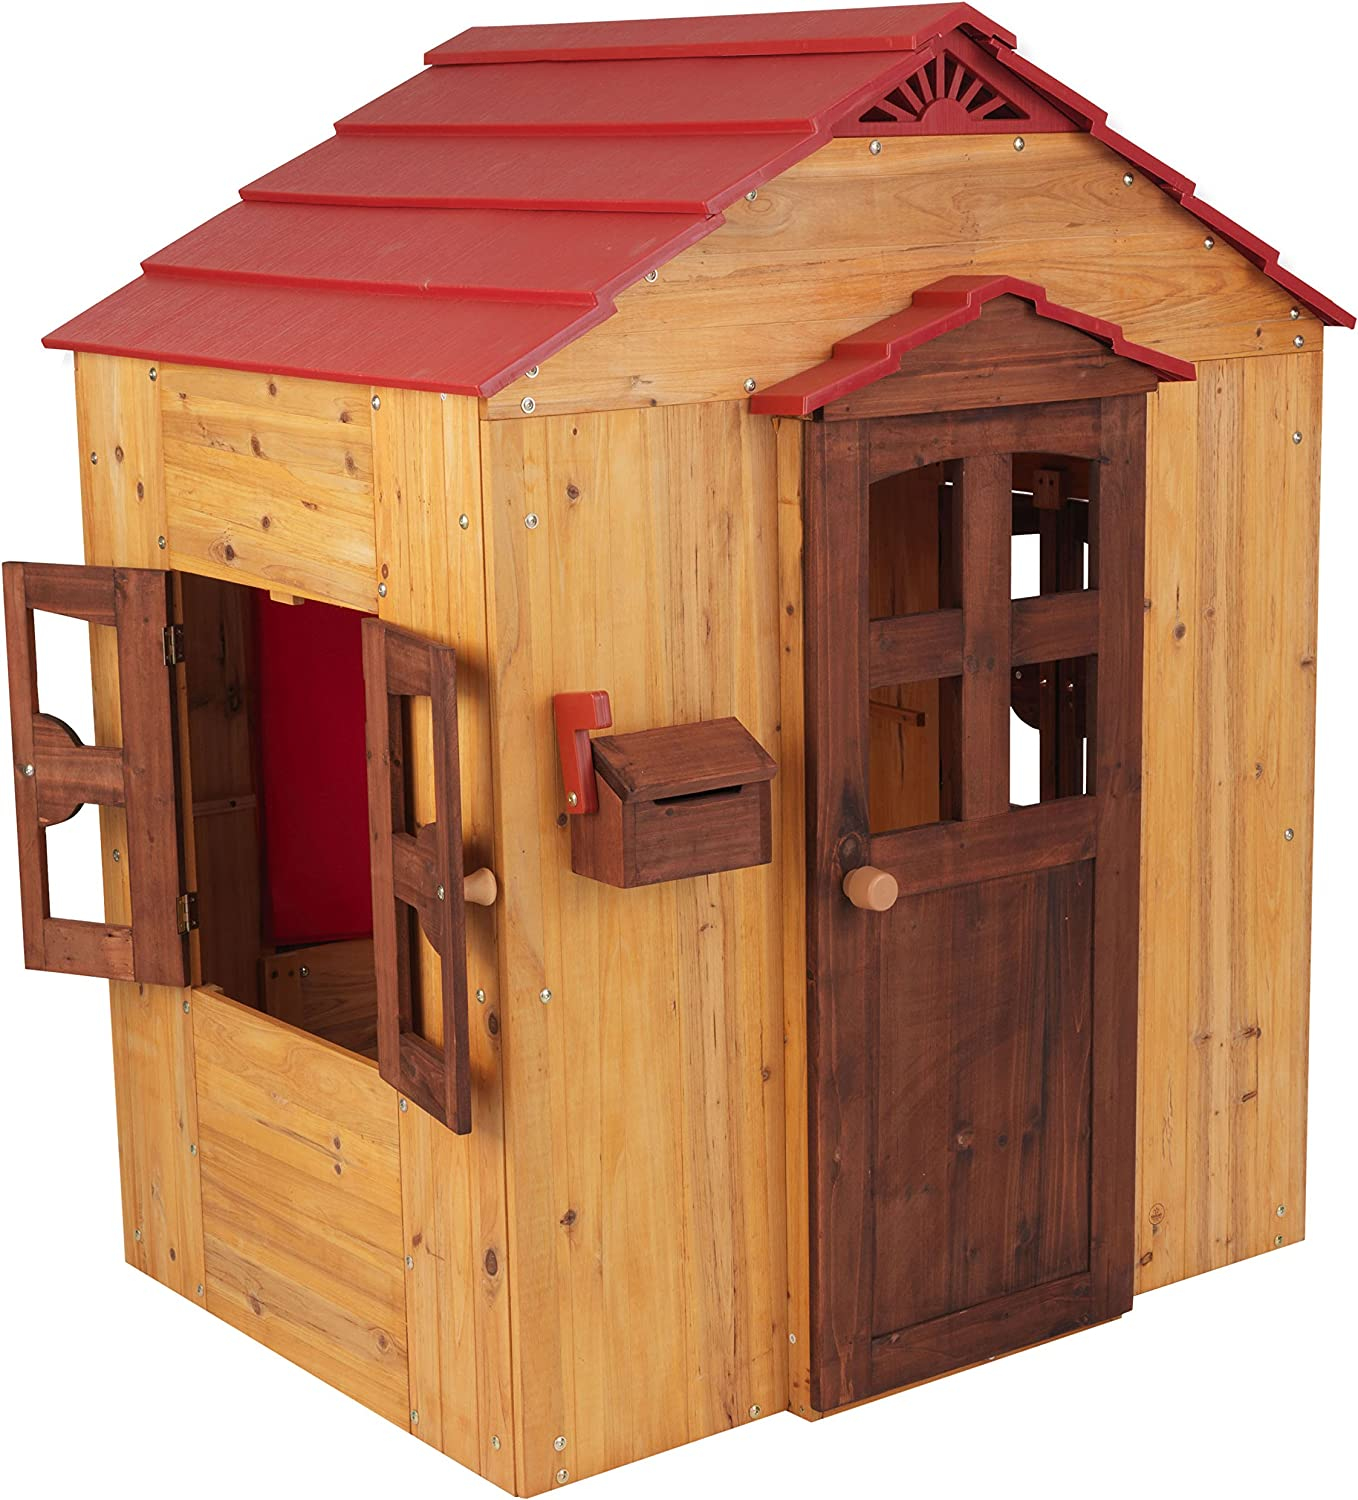 Top 11 Best Kids Outdoor Playhouses in 2020 Reviews 9